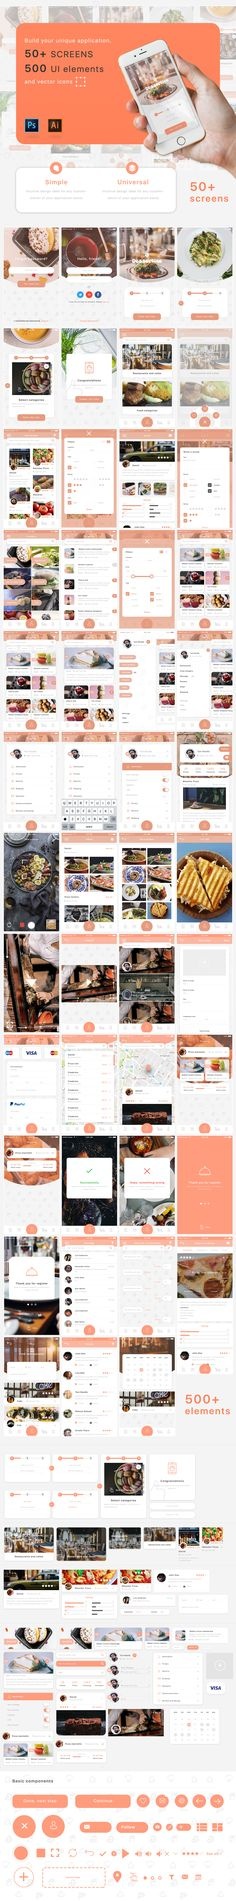 """Check out this @Behance project: """"Mobile App UI kit"""" https://www.behance.net/gallery/49212407/Mobile-App-UI-kit"""